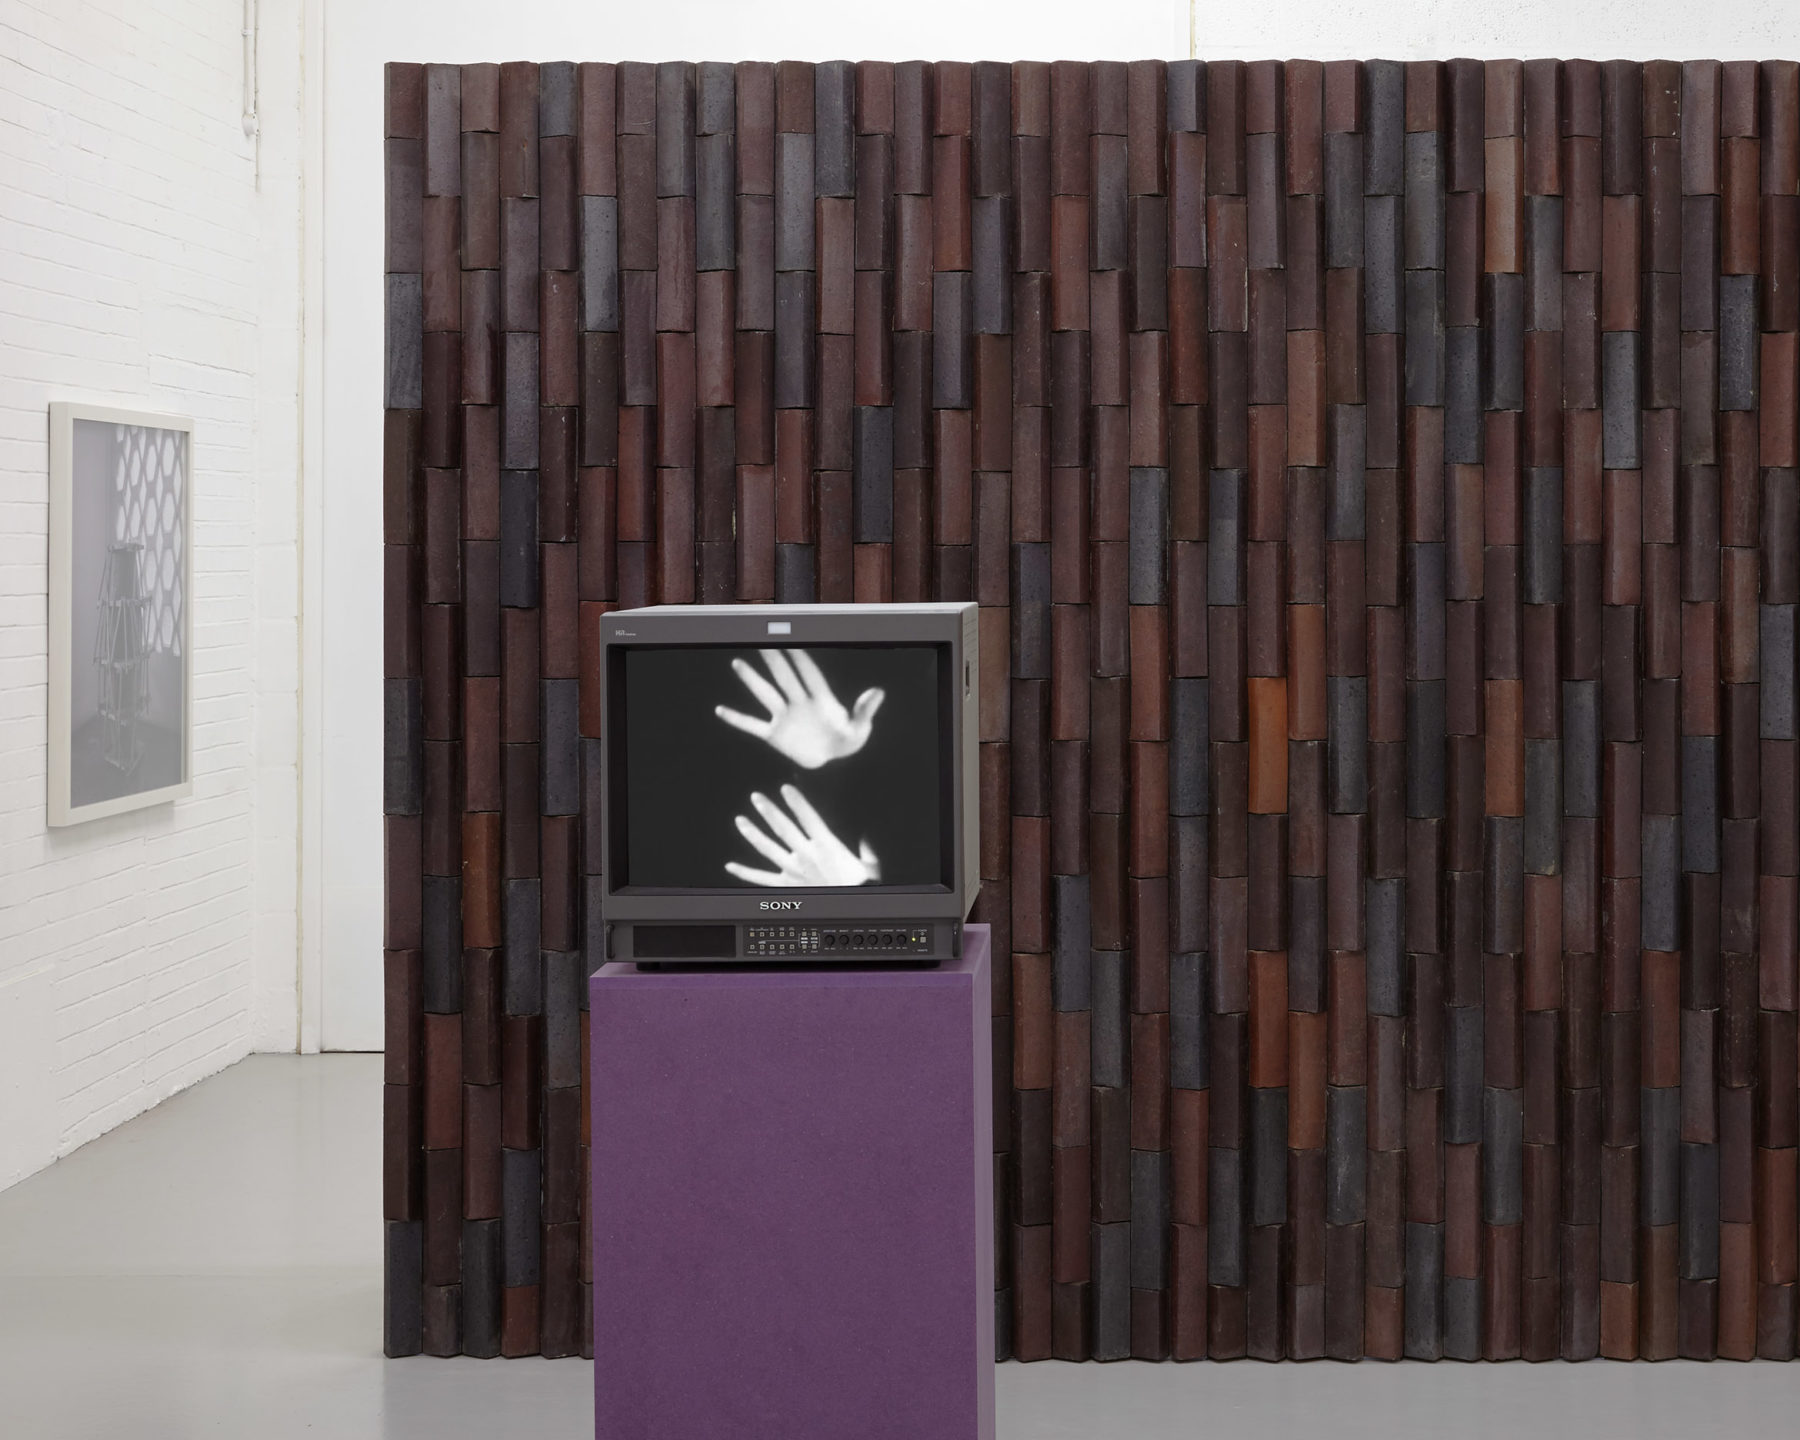 A screen in the gallery shows two white hands set against a dark background. This stands in front of a brick wall.